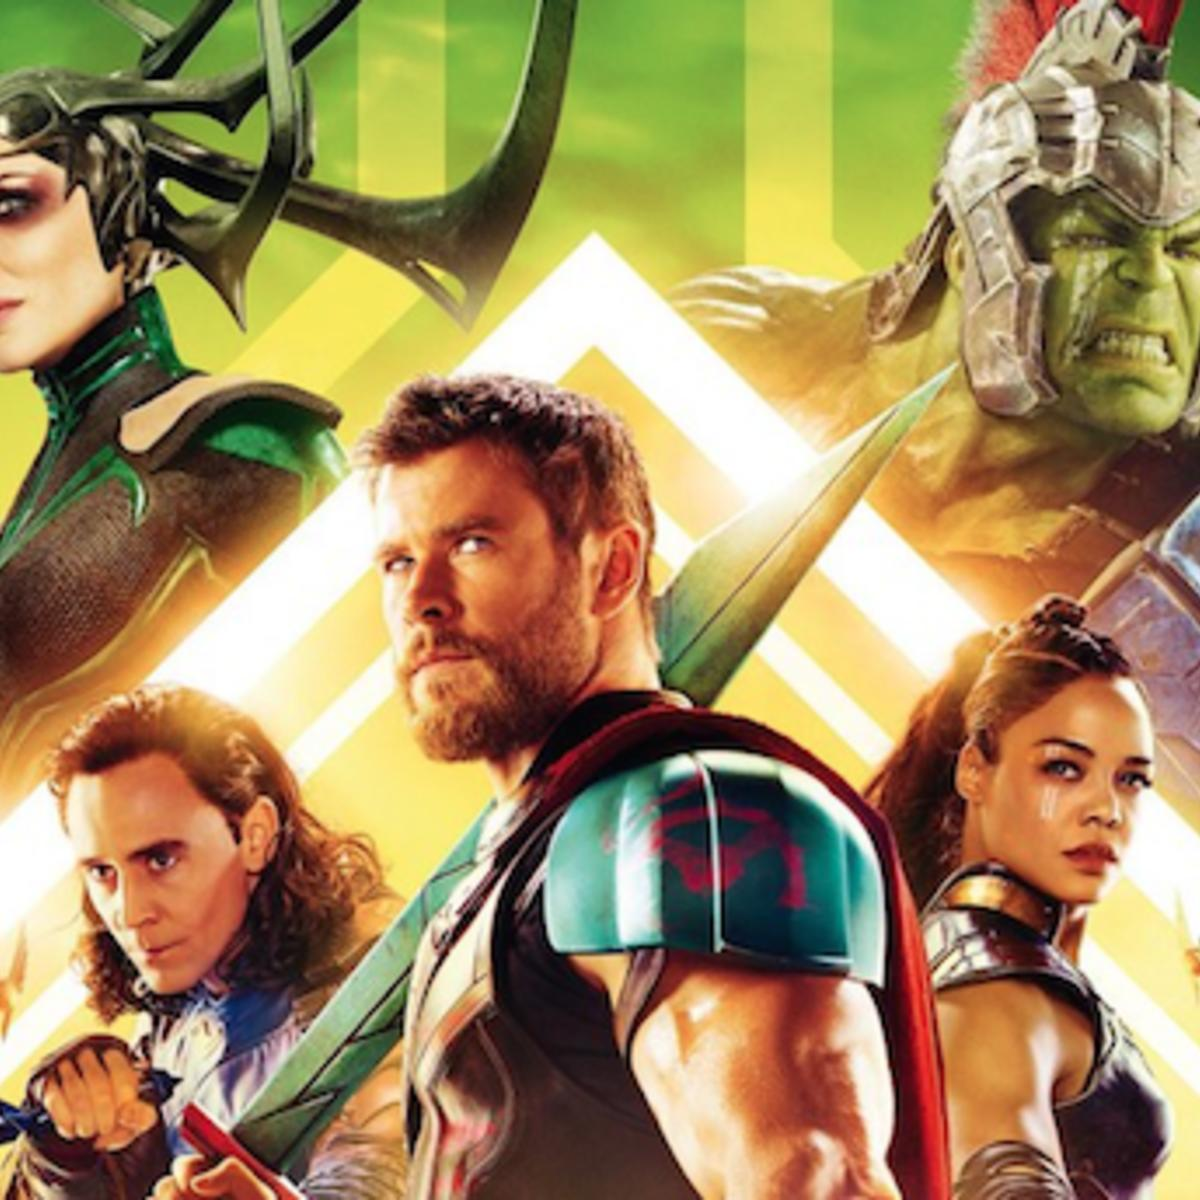 The Two Faces Of Hela Haunt This New Pair Thor Ragnarok Posters